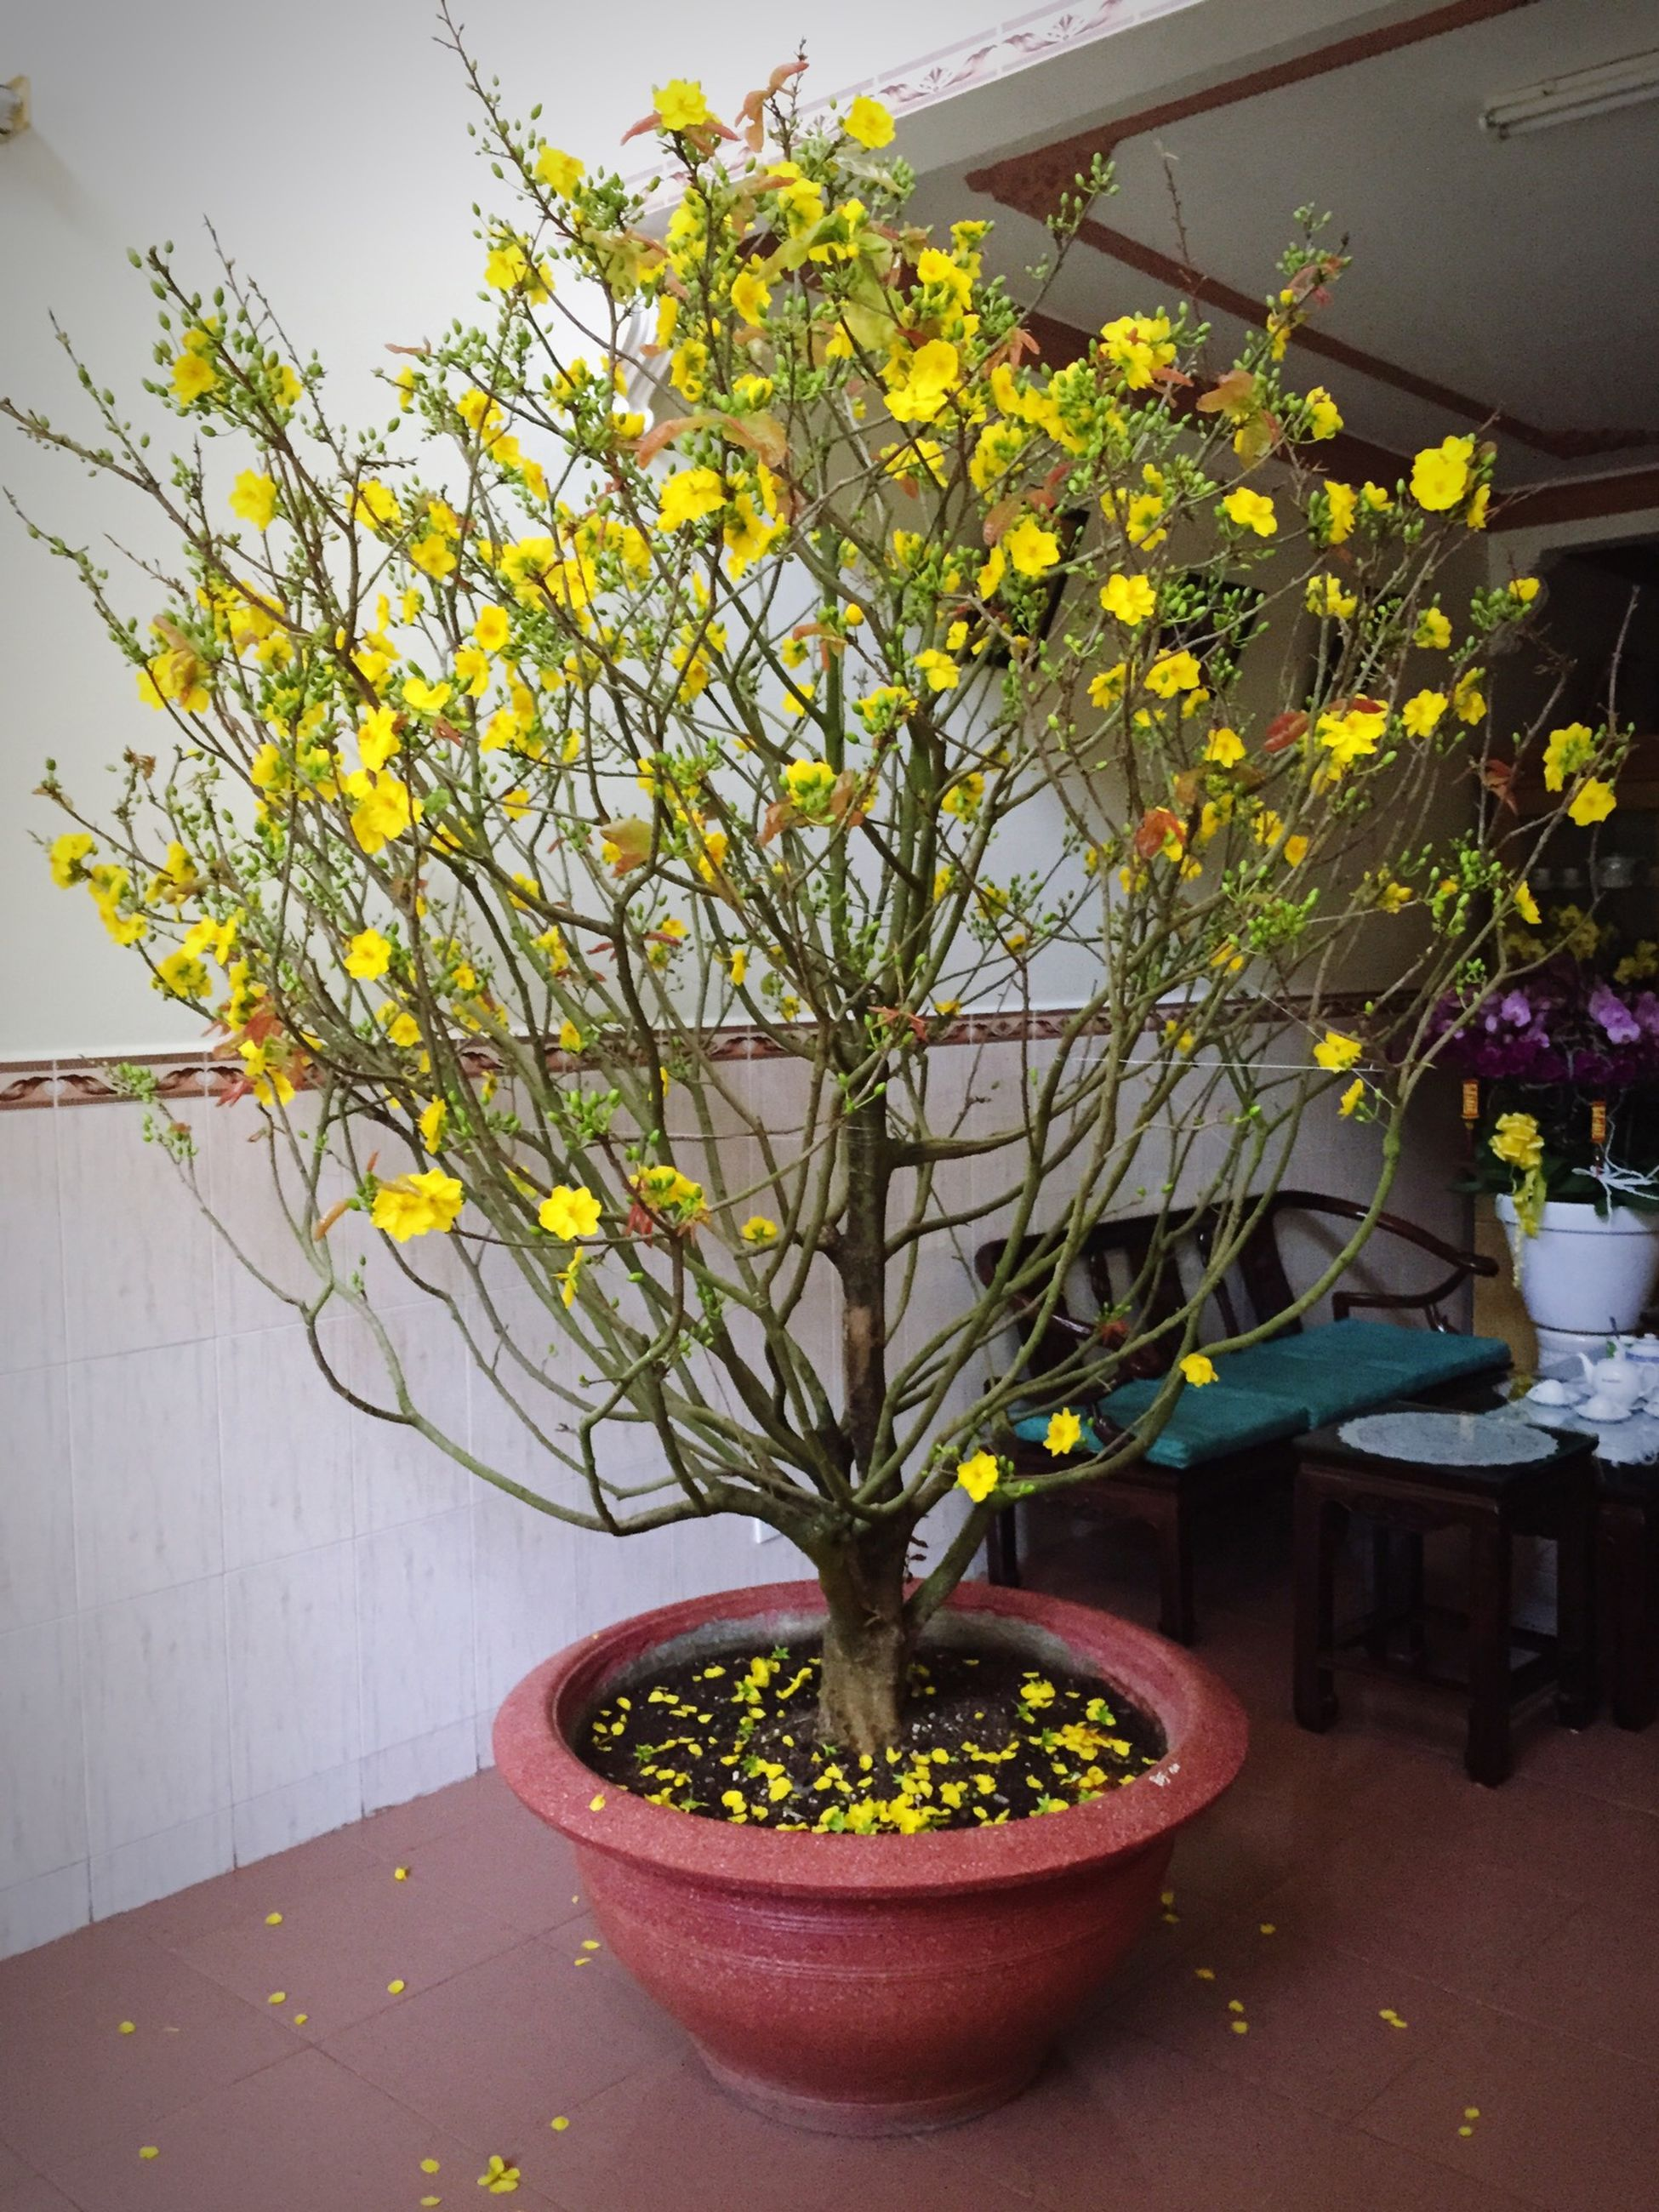 flower, potted plant, growth, plant, freshness, flower pot, vase, leaf, built structure, architecture, yellow, table, nature, indoors, fragility, wall - building feature, house, front or back yard, building exterior, no people